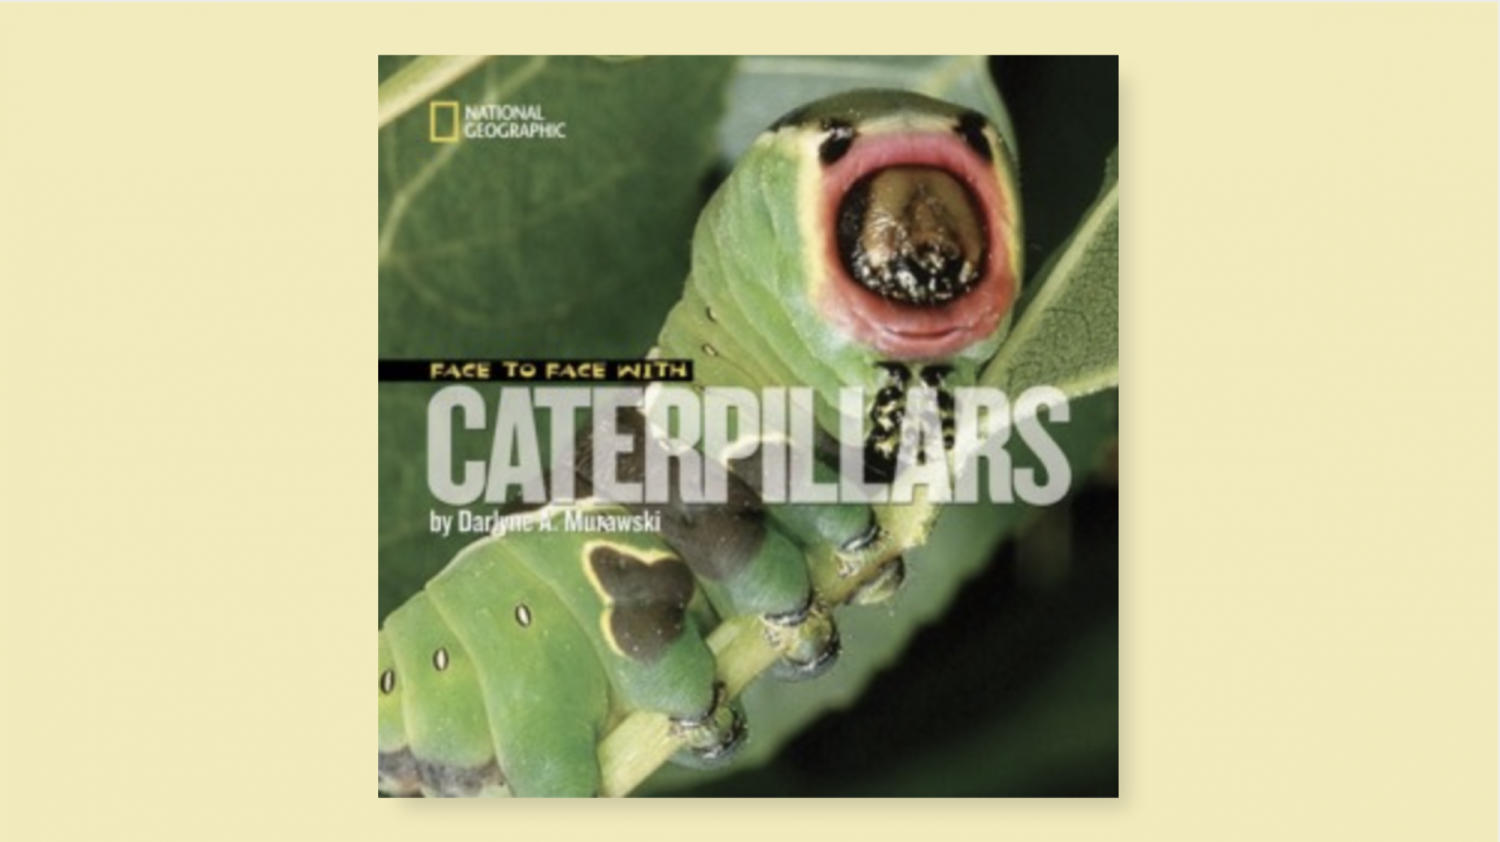 Face to Face with Catepillars book cover